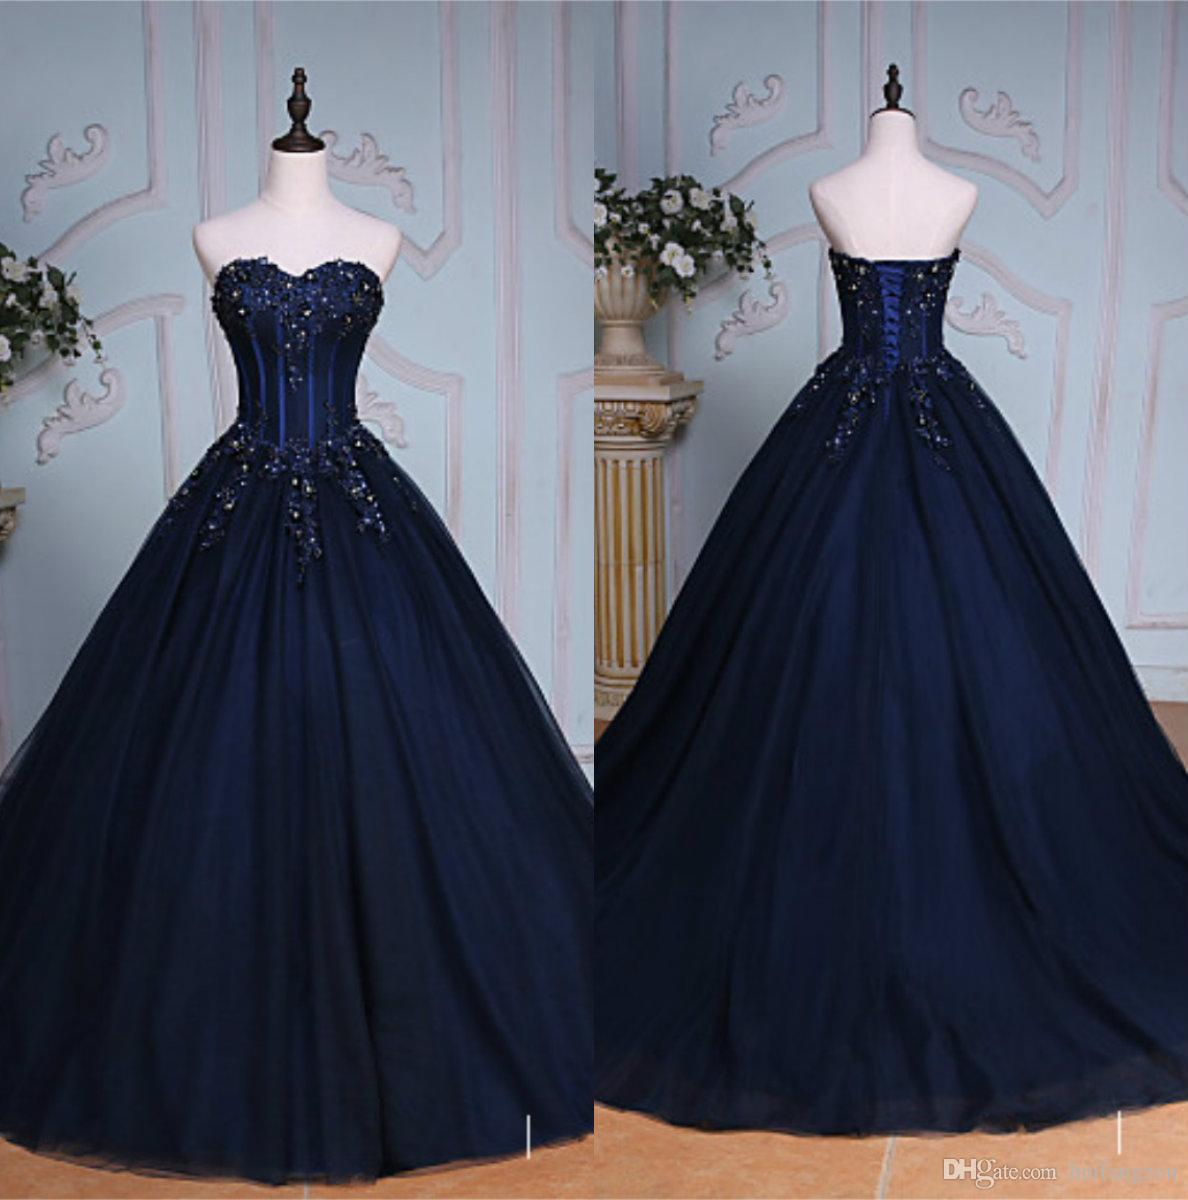 3b191ea4dfd Vintage Dark Navy Prom Dresses Shiny Exquisite Beading Lace Up Corset  Sweetheart Neck Elegant Evening Dress Ball Gowns Plus Size Black Prom  Dresses Uk ...